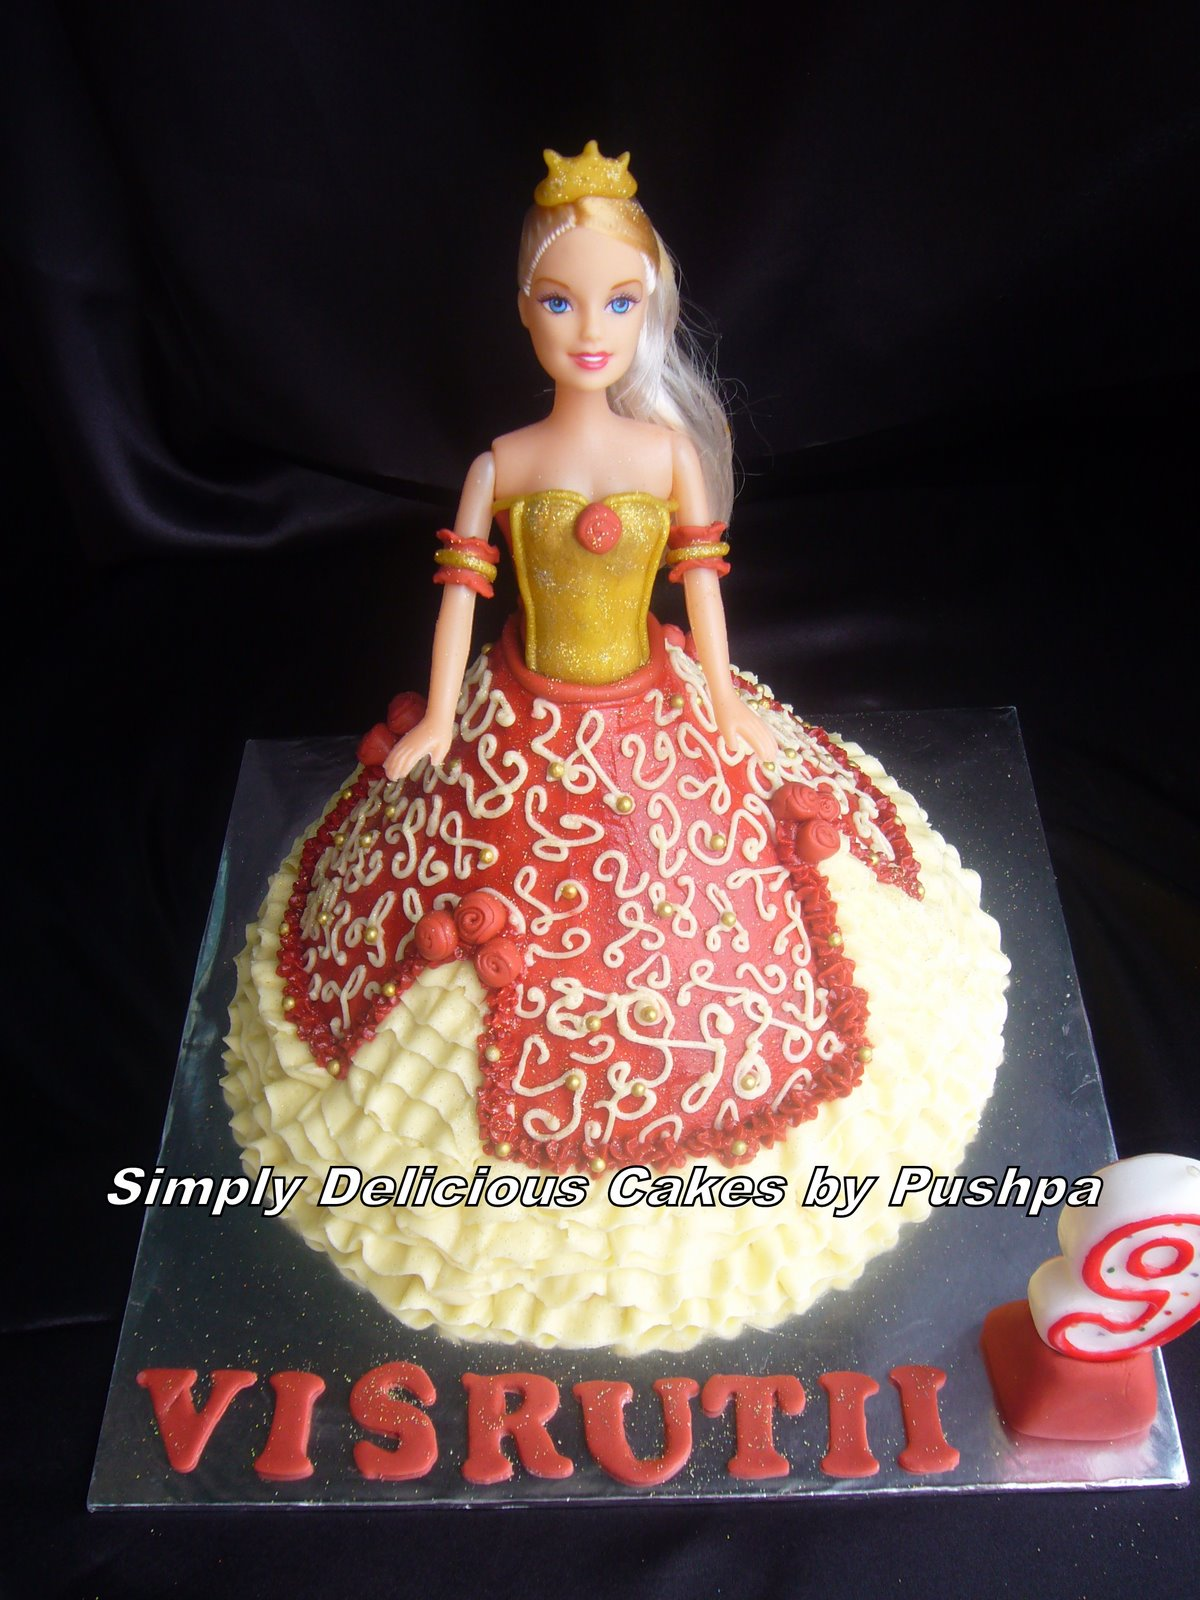 Cake Images Ramesh : SIMPLY DELICIOUS CAKES: Maroon & Gold Barbie